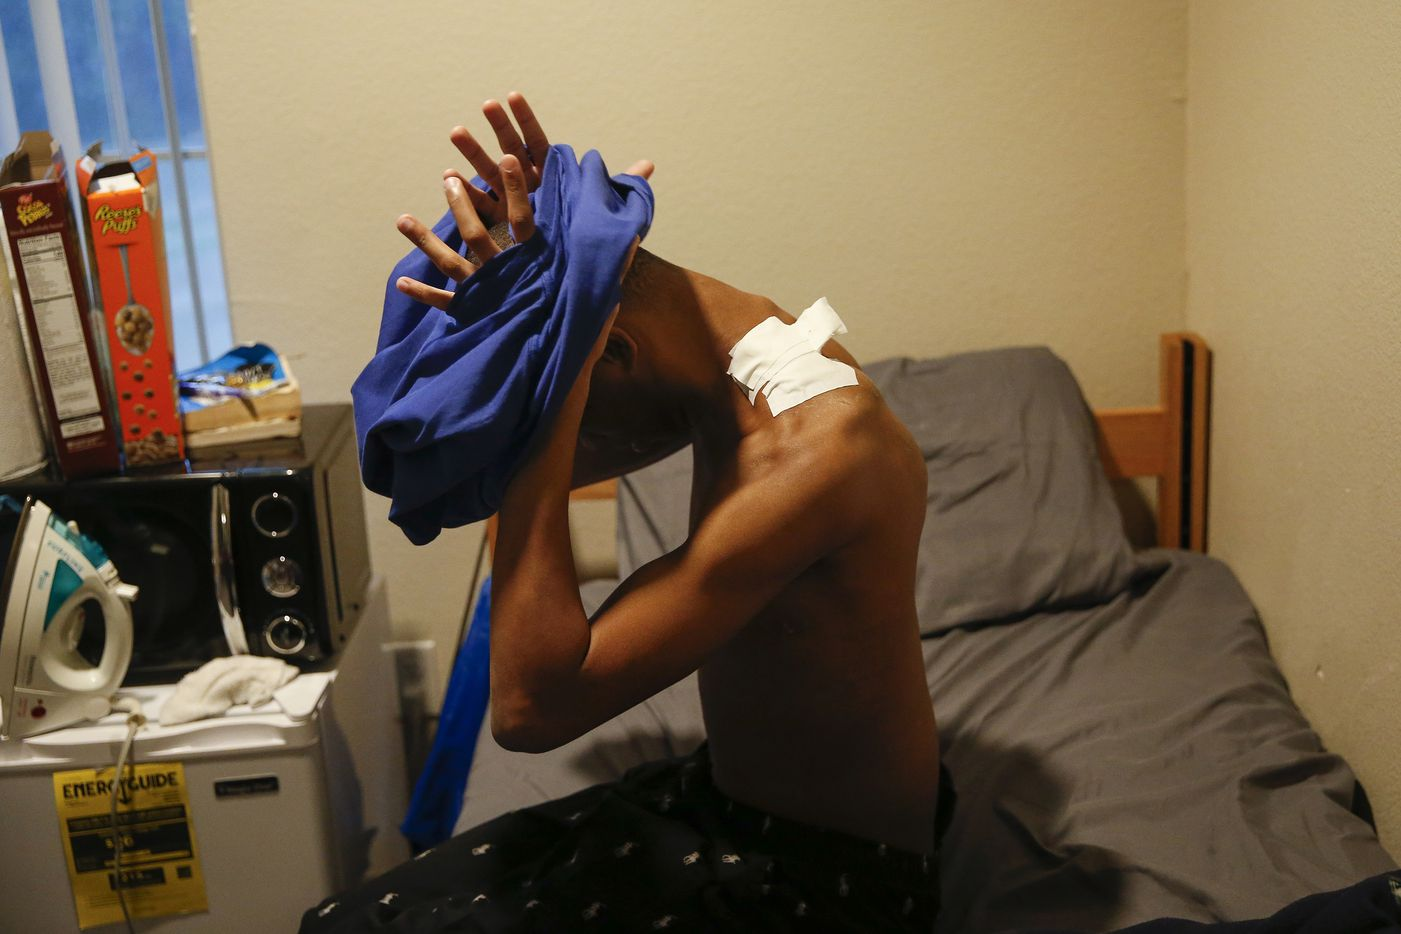 Jaylon Miller stretches a shirt over his head as a bandage covers a gunshot wound on his shoulder at the University of North Texas at Dallas on Thursday, Jan. 30, 2020 in Dallas.